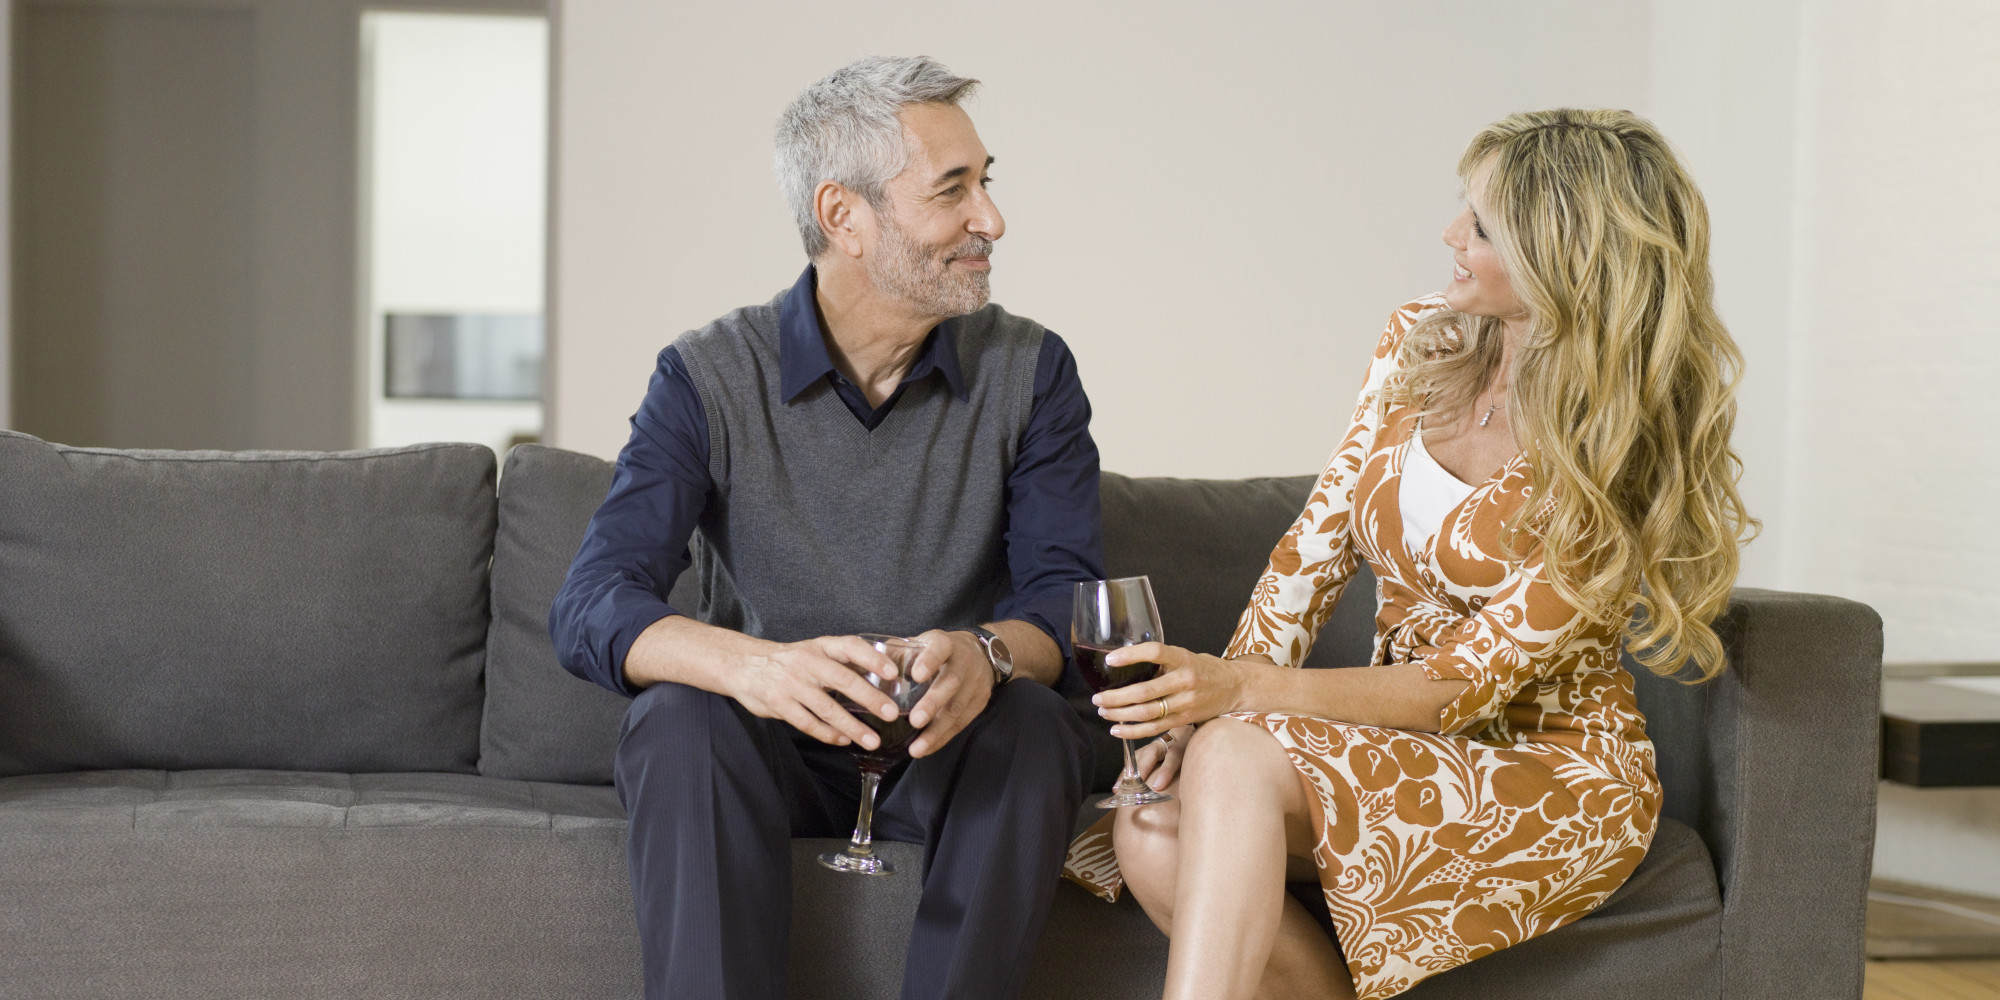 Middle age dating in philadelphia